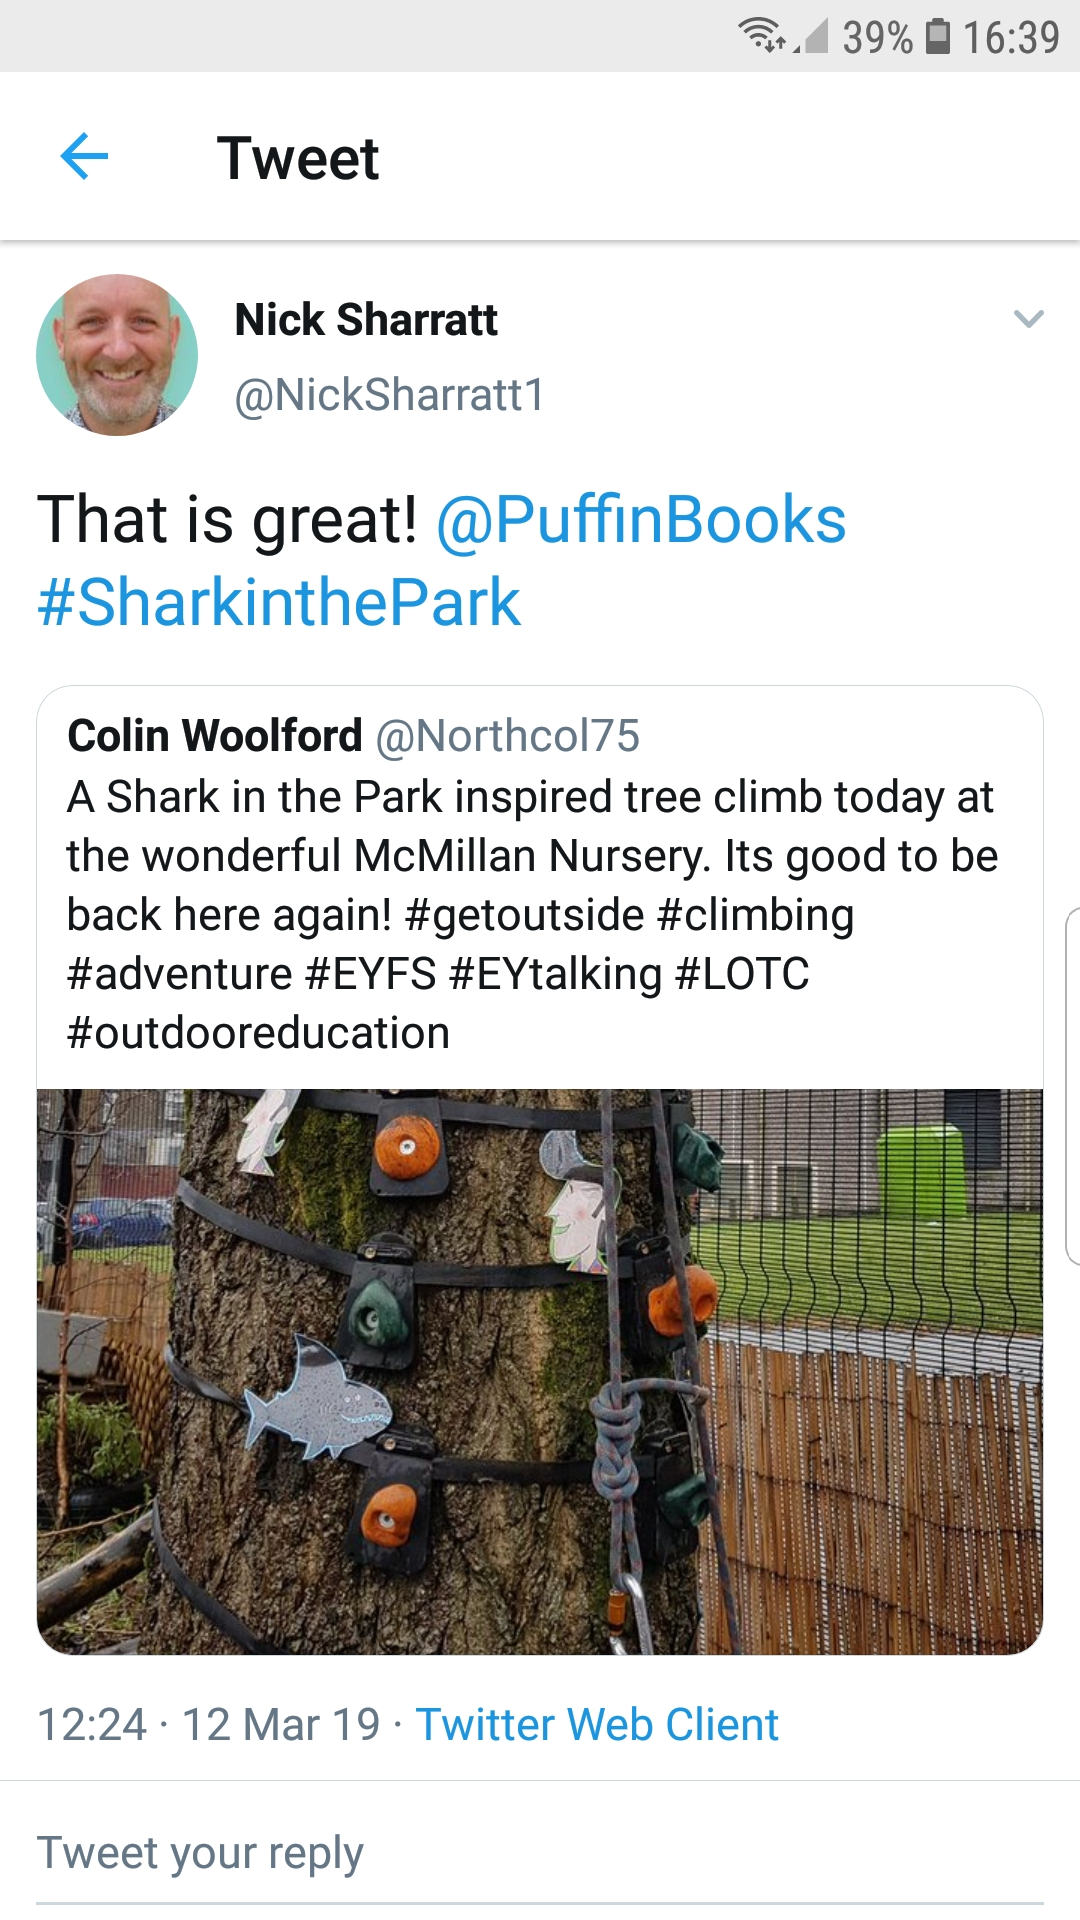 Twiter, Nick Sharratt, EYFS Outdoors, Shark in the Park